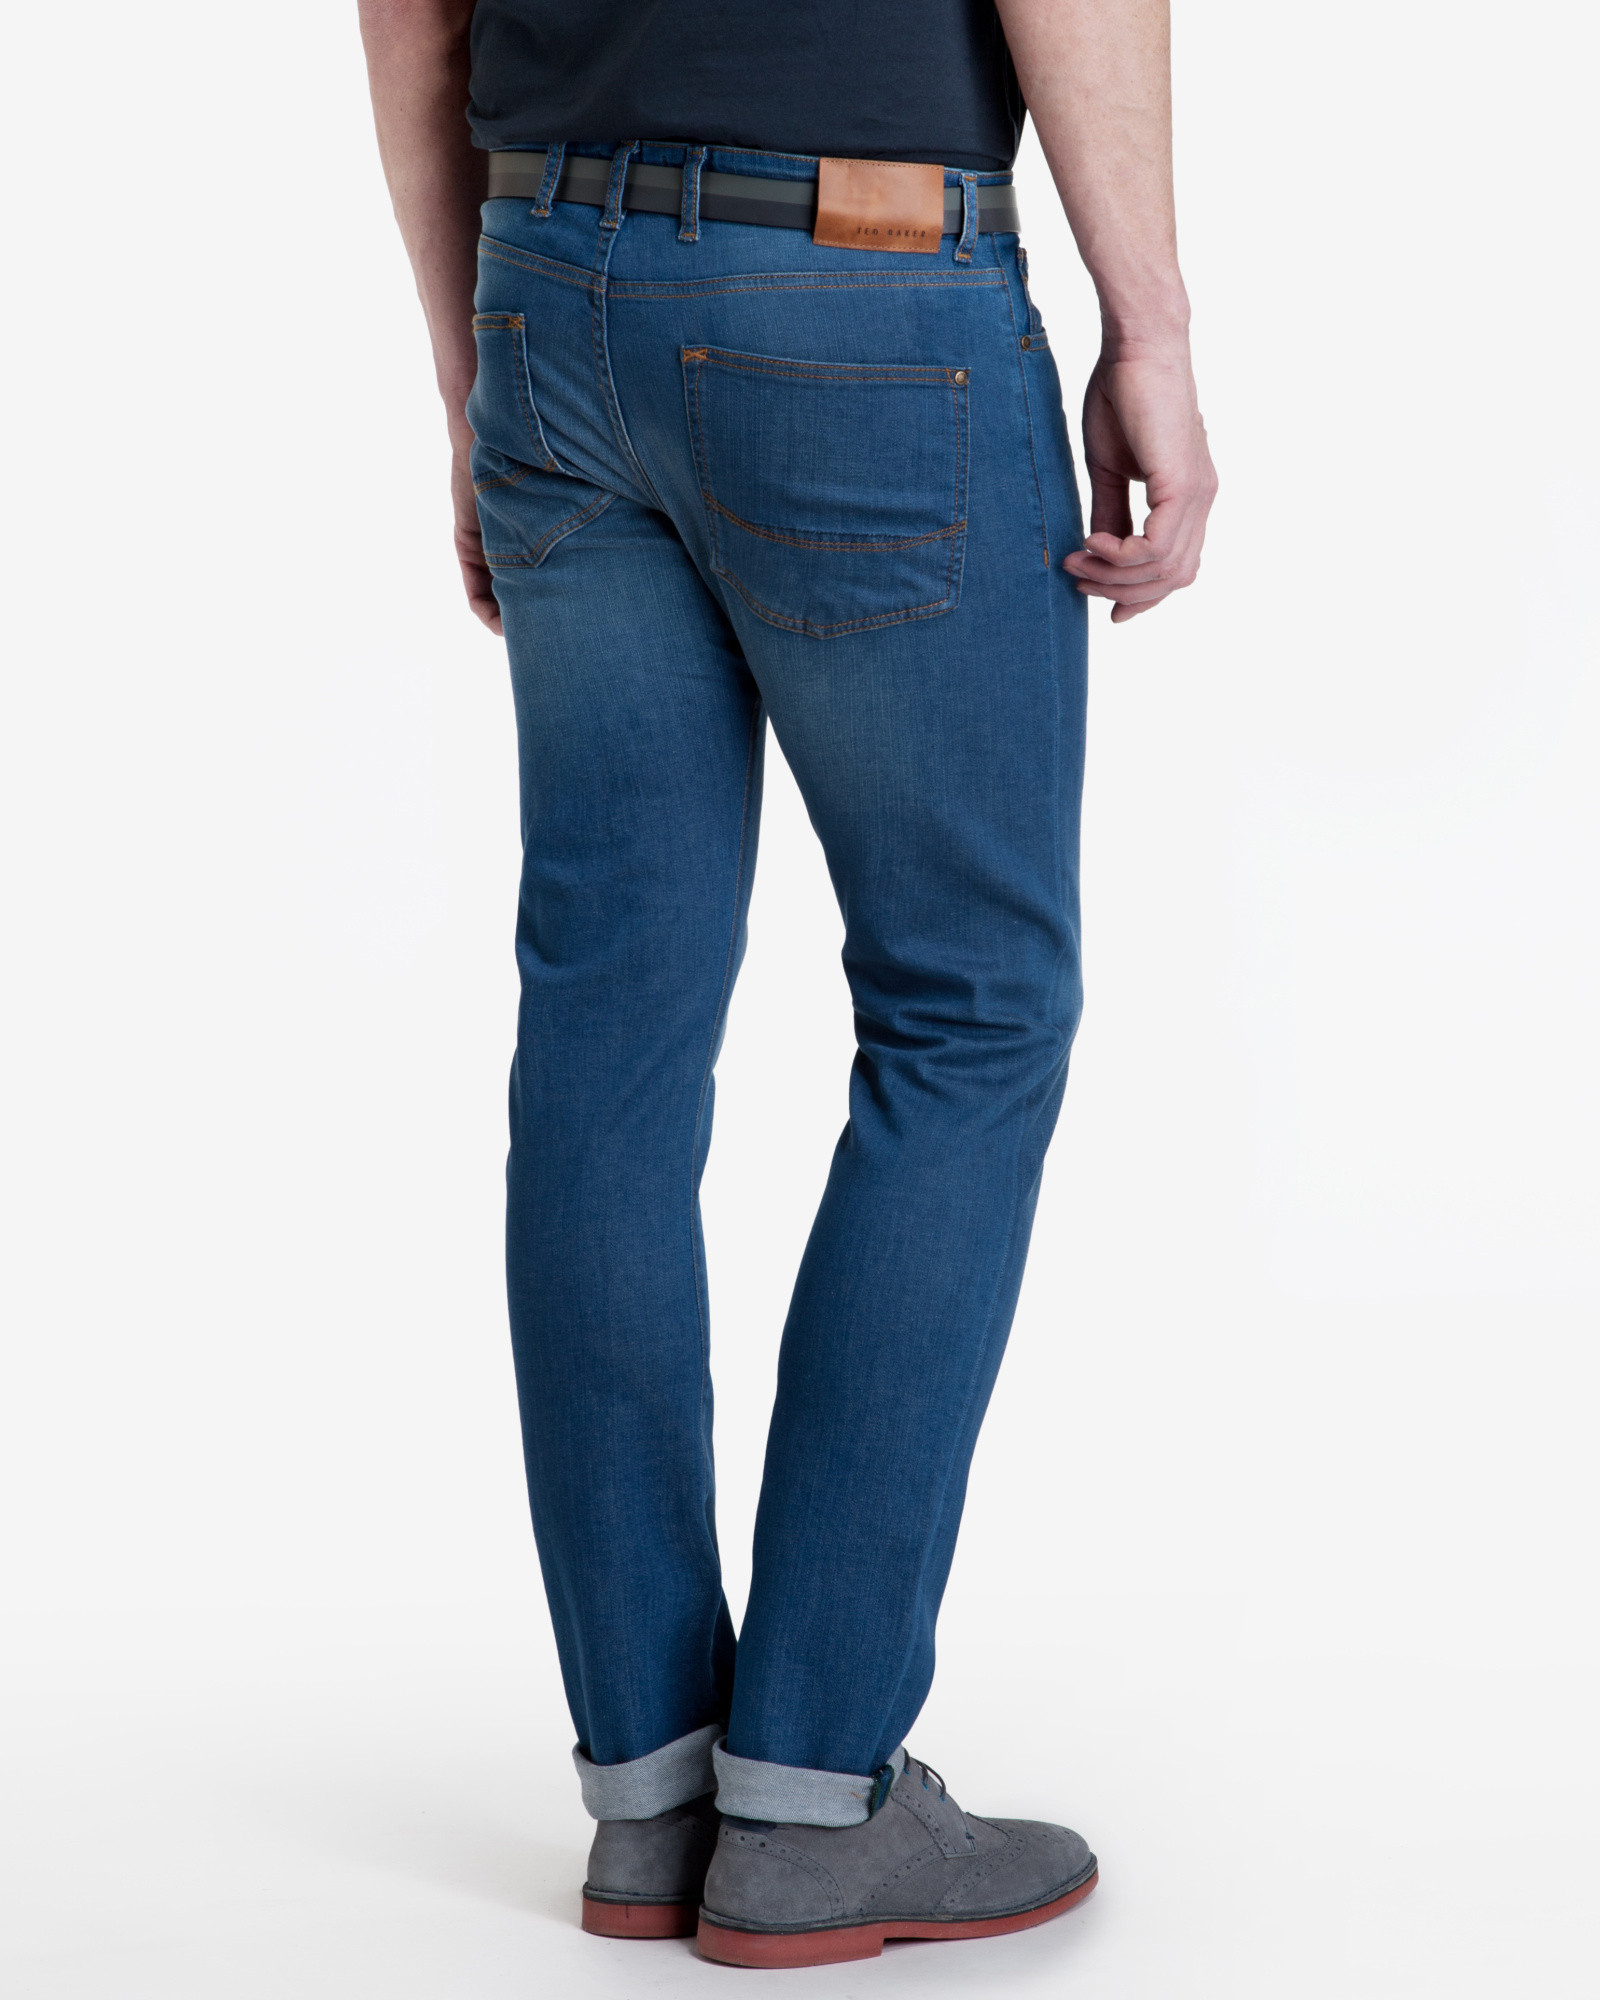 Tapered Jeans Ted Baker Affordable Sale Online Enjoy For Sale Sale Recommend For Sale Buy Authentic Online Cheap Sale Clearance Store l8idijbZ